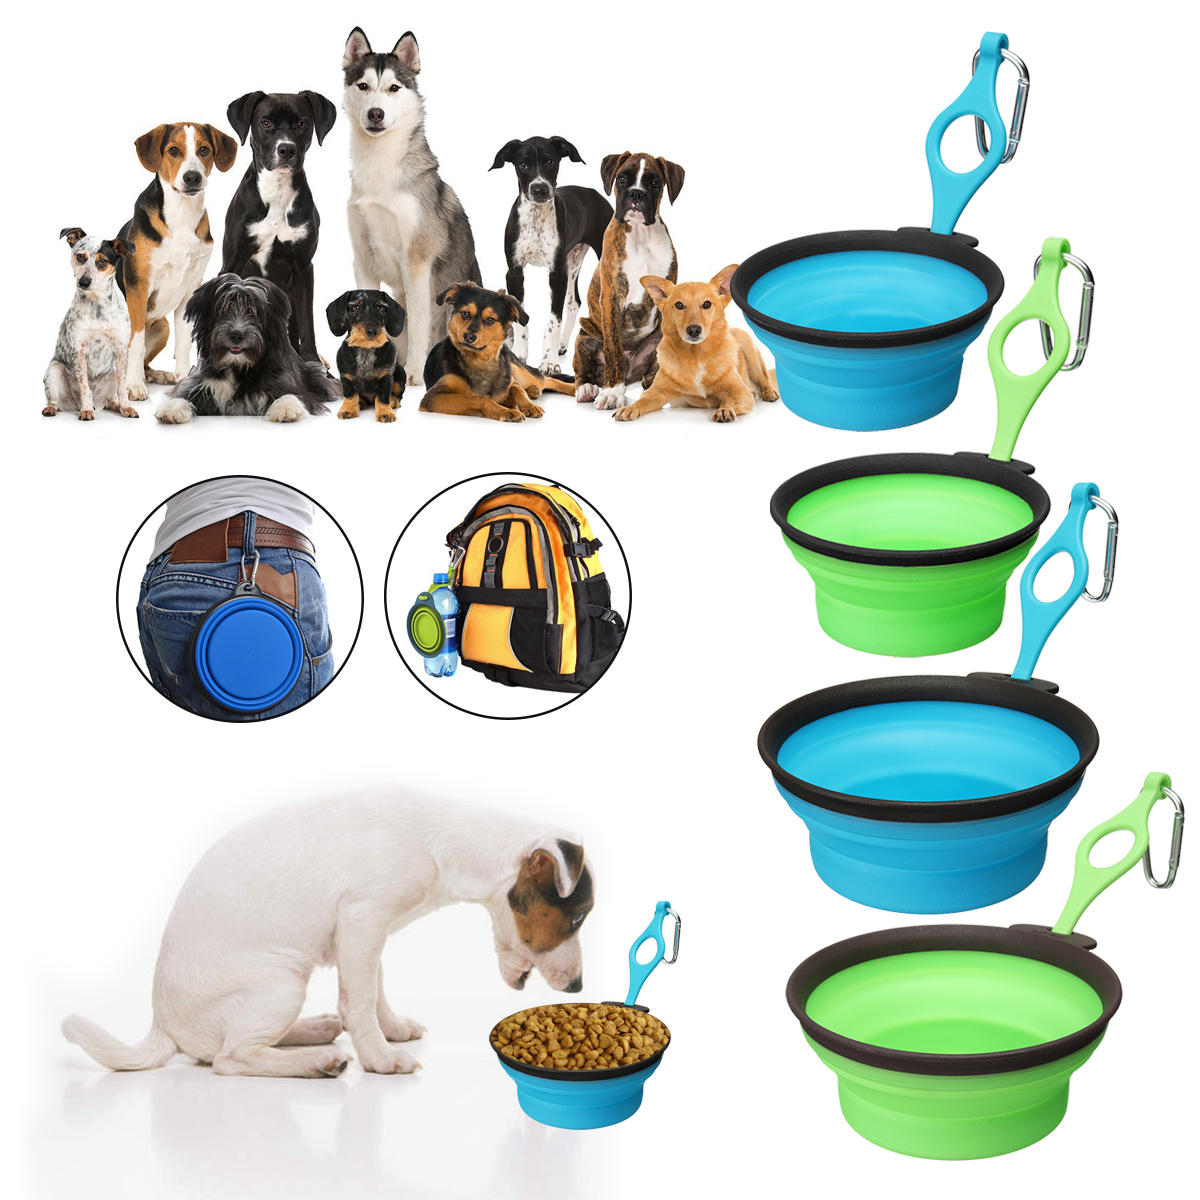 Pet Supplies Pet Dog Cat Automatic Food Supply 2 In 1 Bowl Bottle Drinking Feeding Bowls Tall Traveling Dishes, Feeders & Fountains